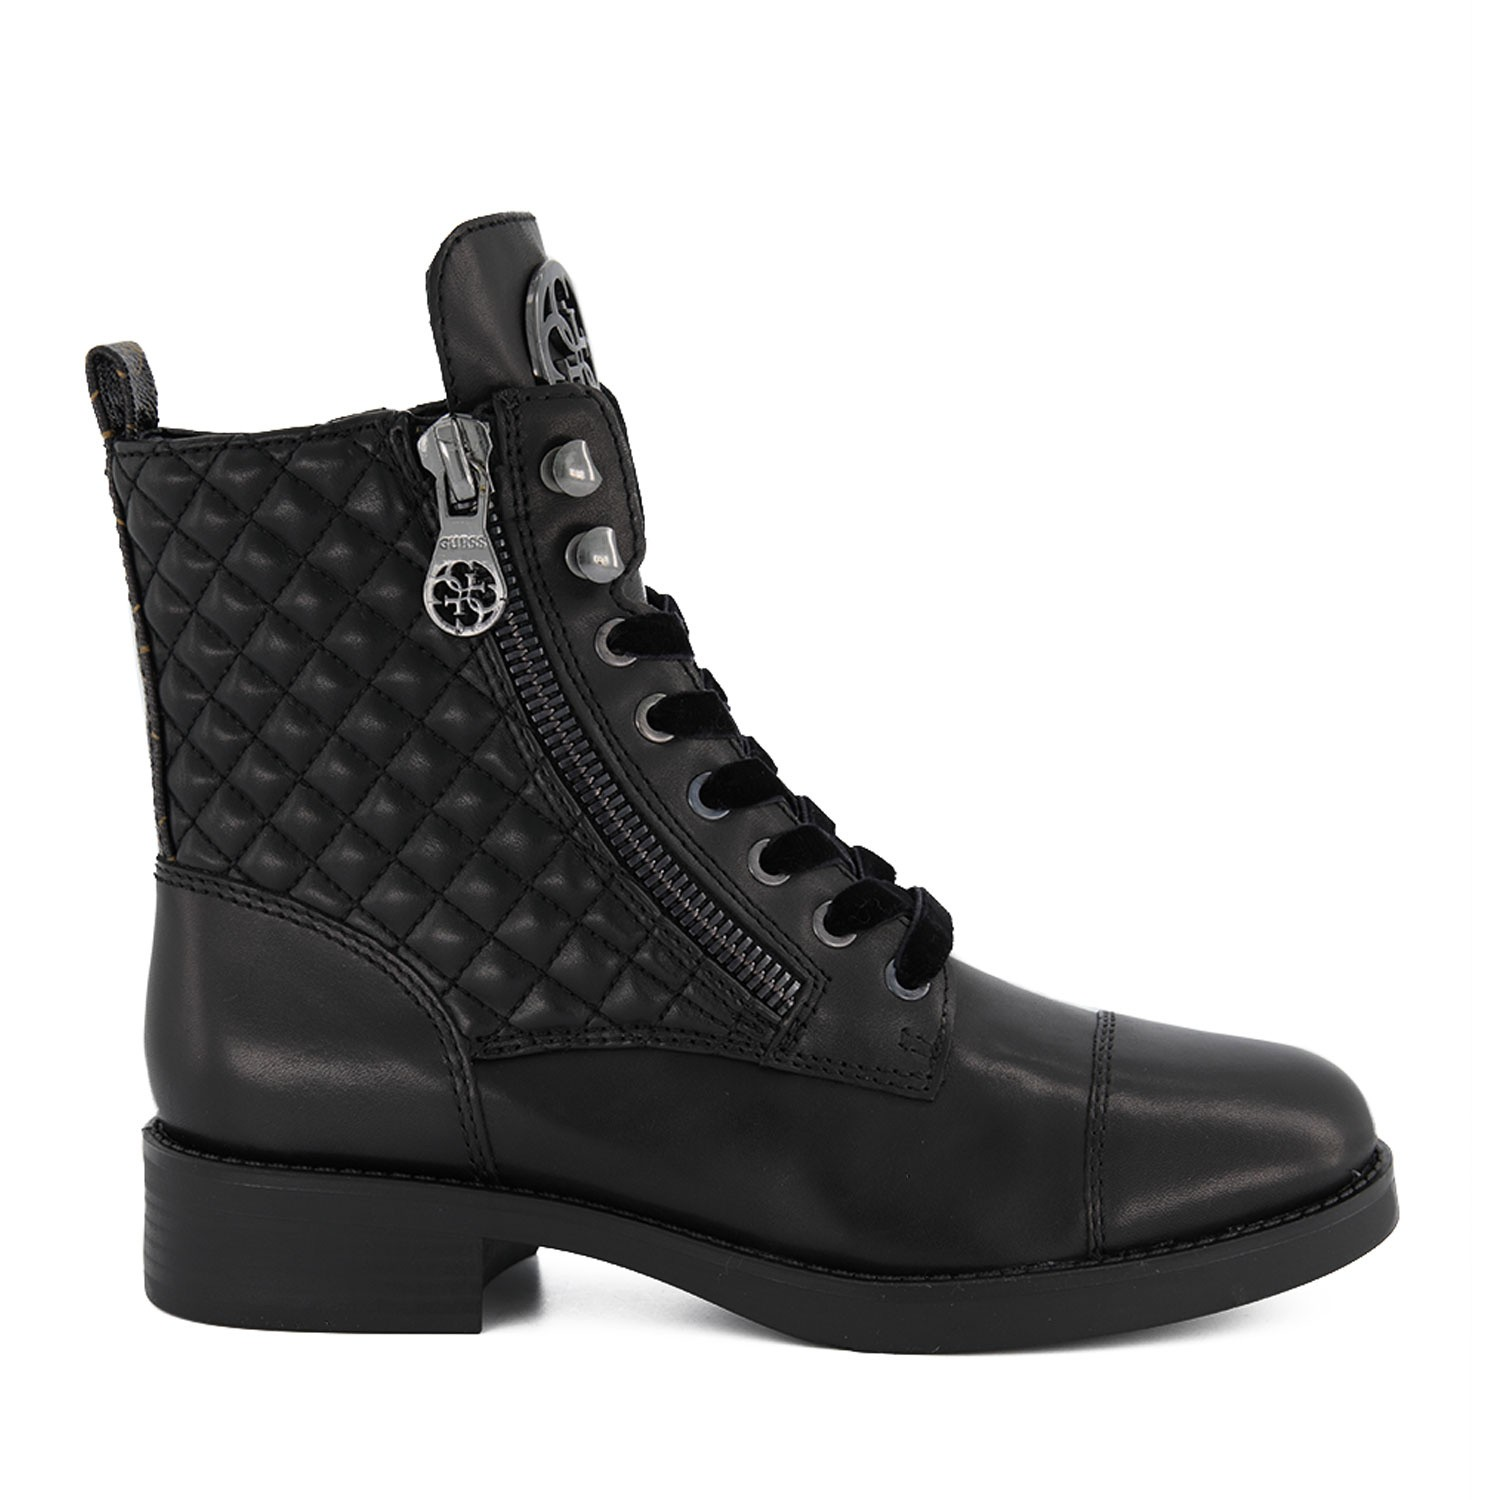 Picture of Guess FL8BEGFAL10 womens boots black